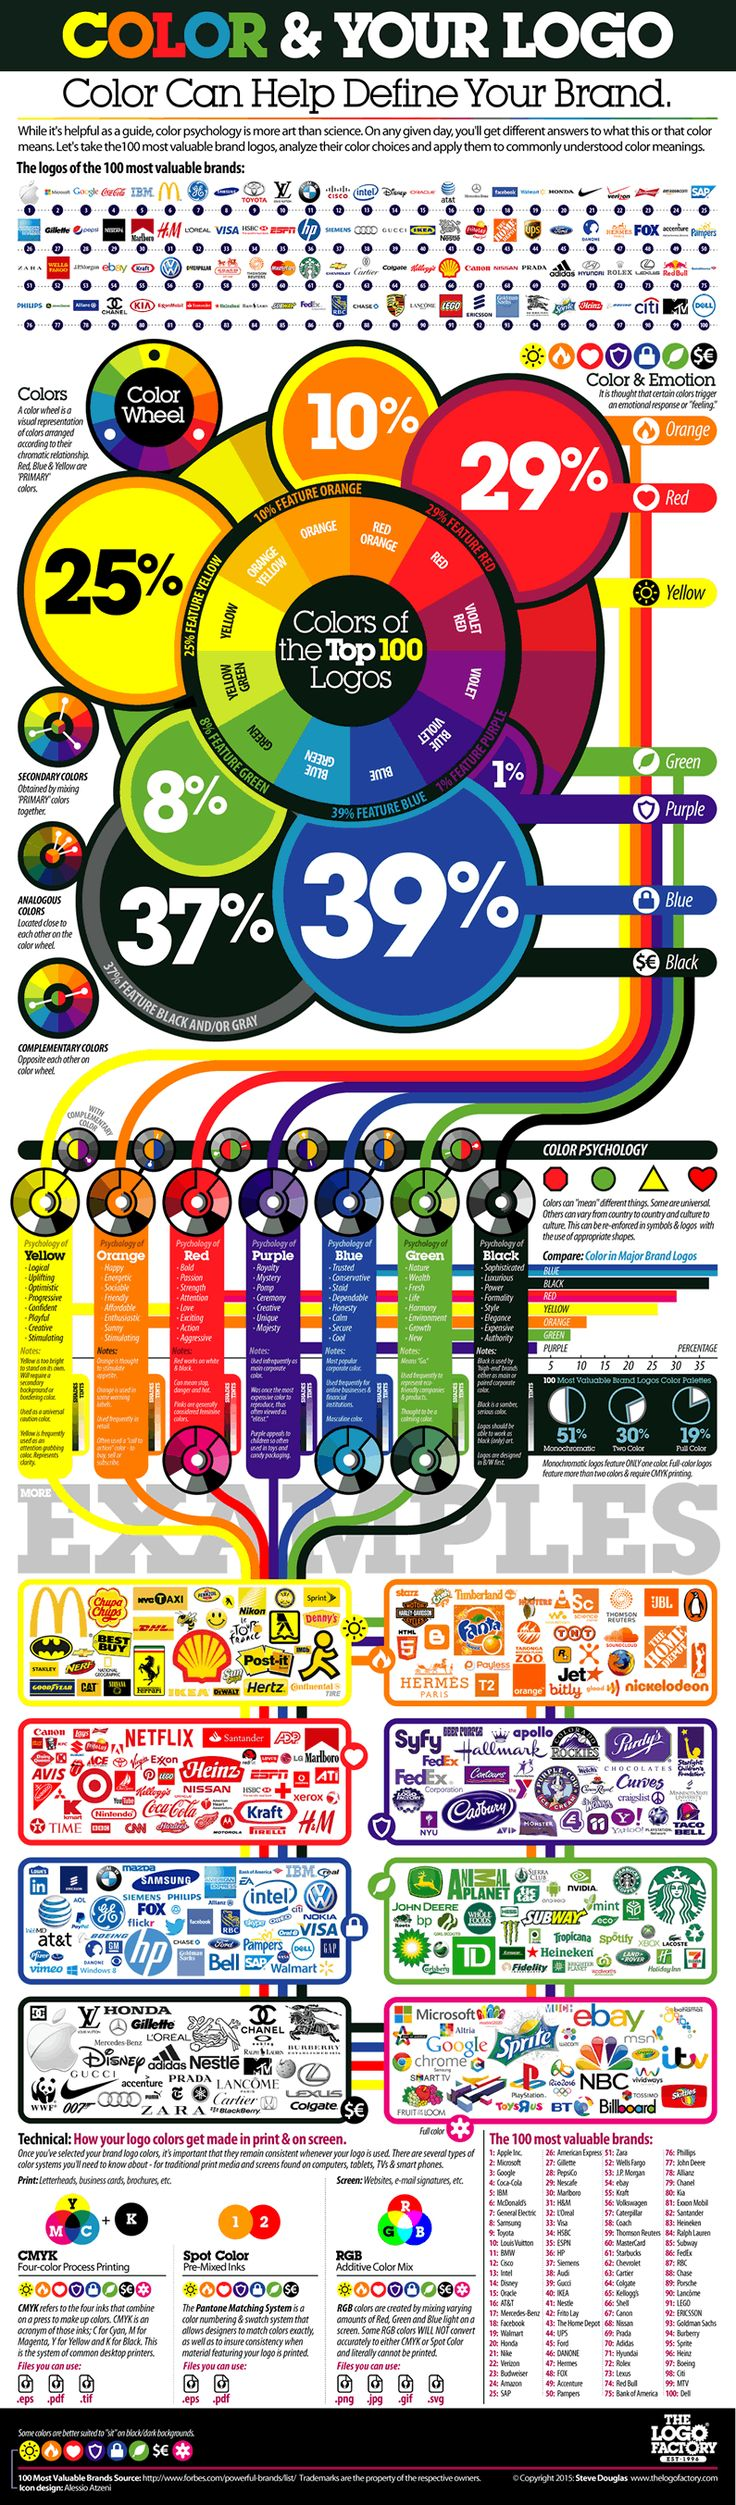 Infographic: Using color psychology when designing logos